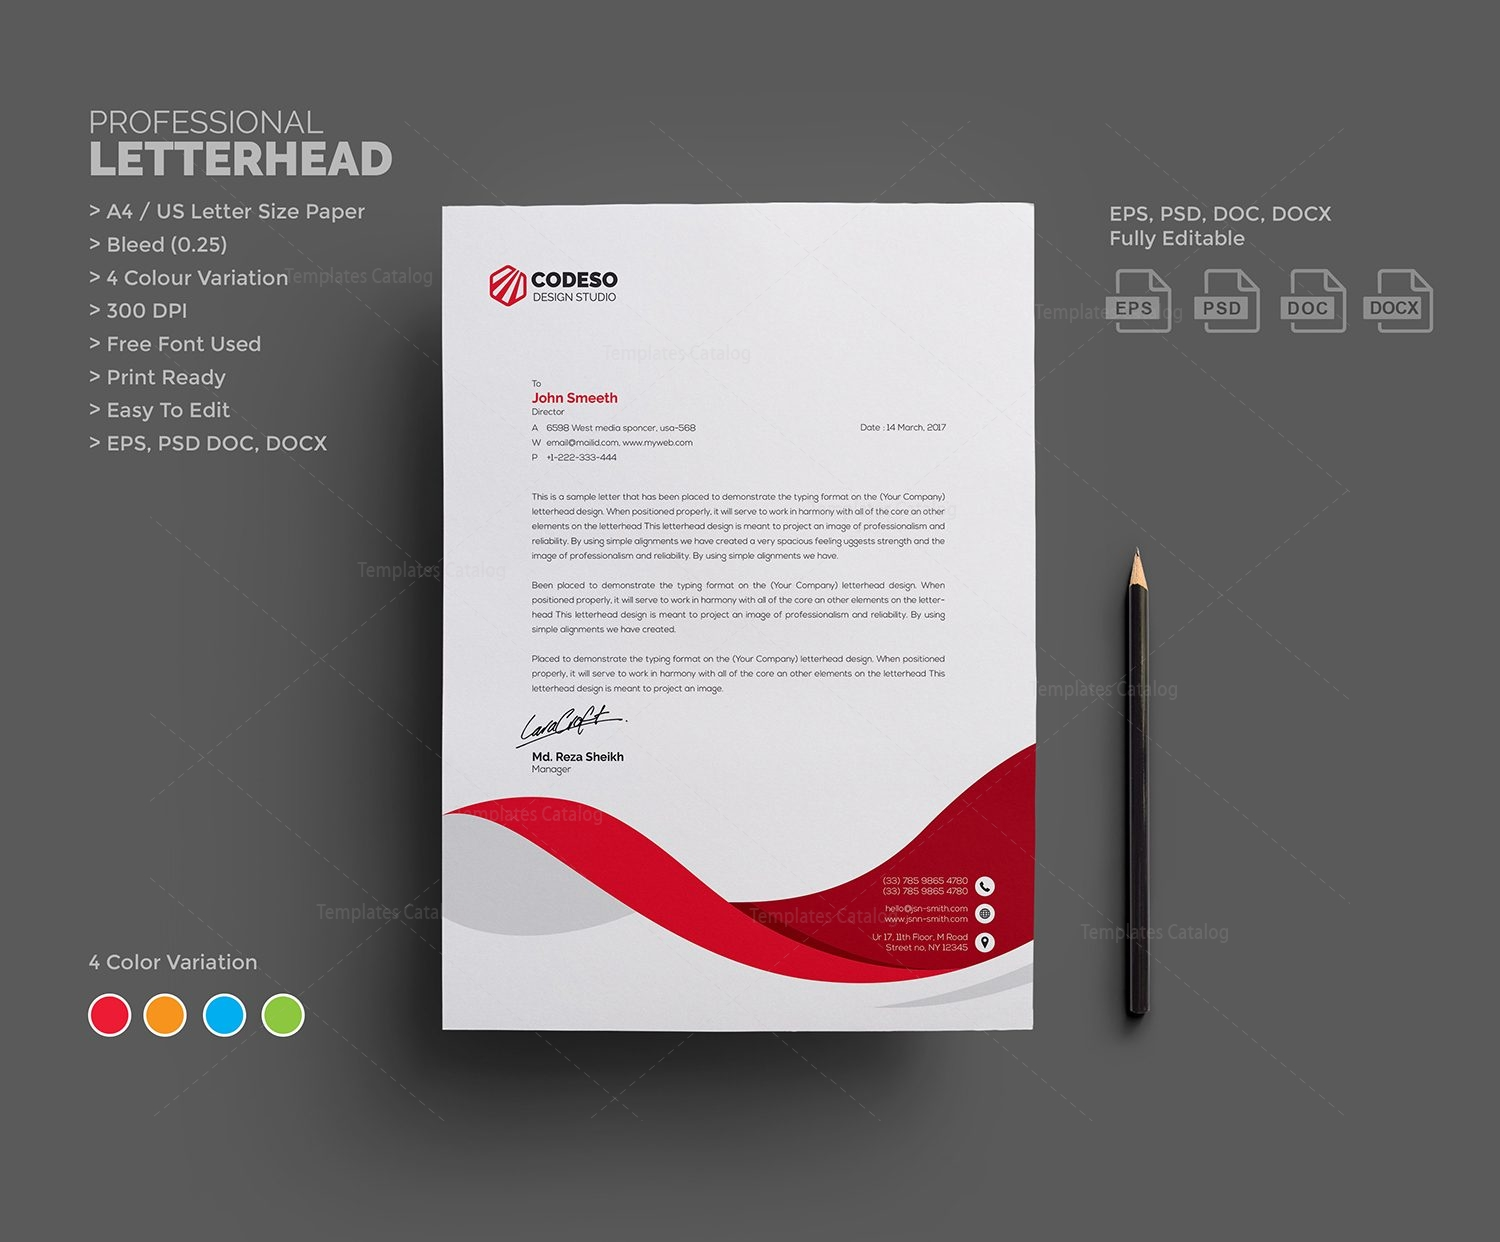 Letter format dimensions picture ideas references letter format dimensions us letter size letterhead template spiritdancerdesigns Choice Image